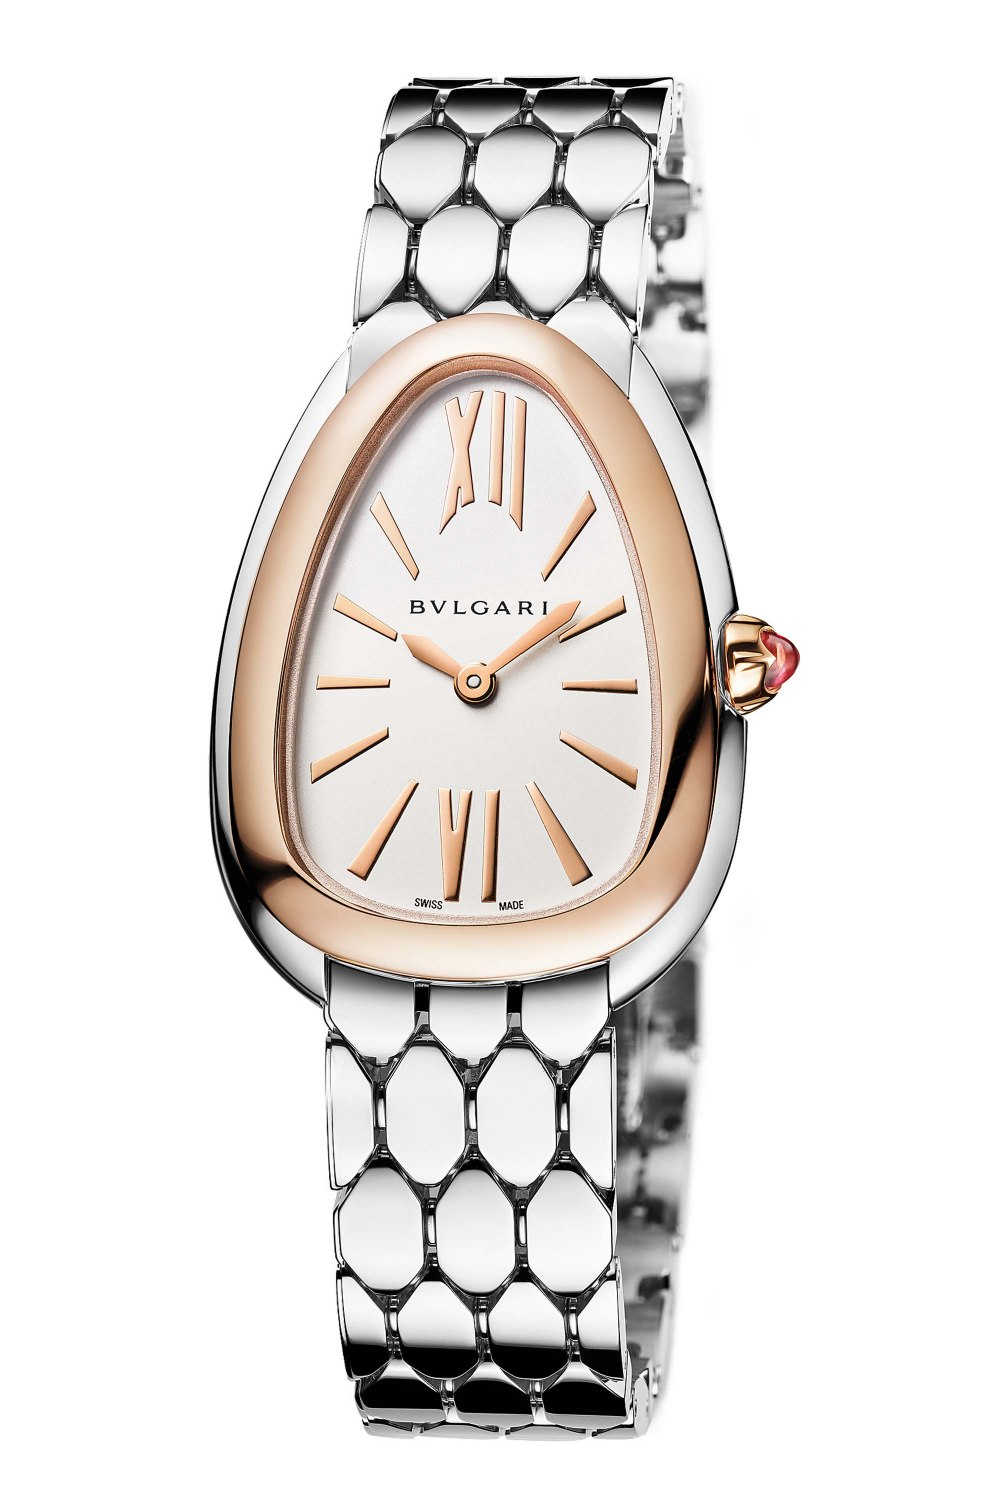 BULGARI Serpenti Seduttori Stainless Steel Rose Gold 103144